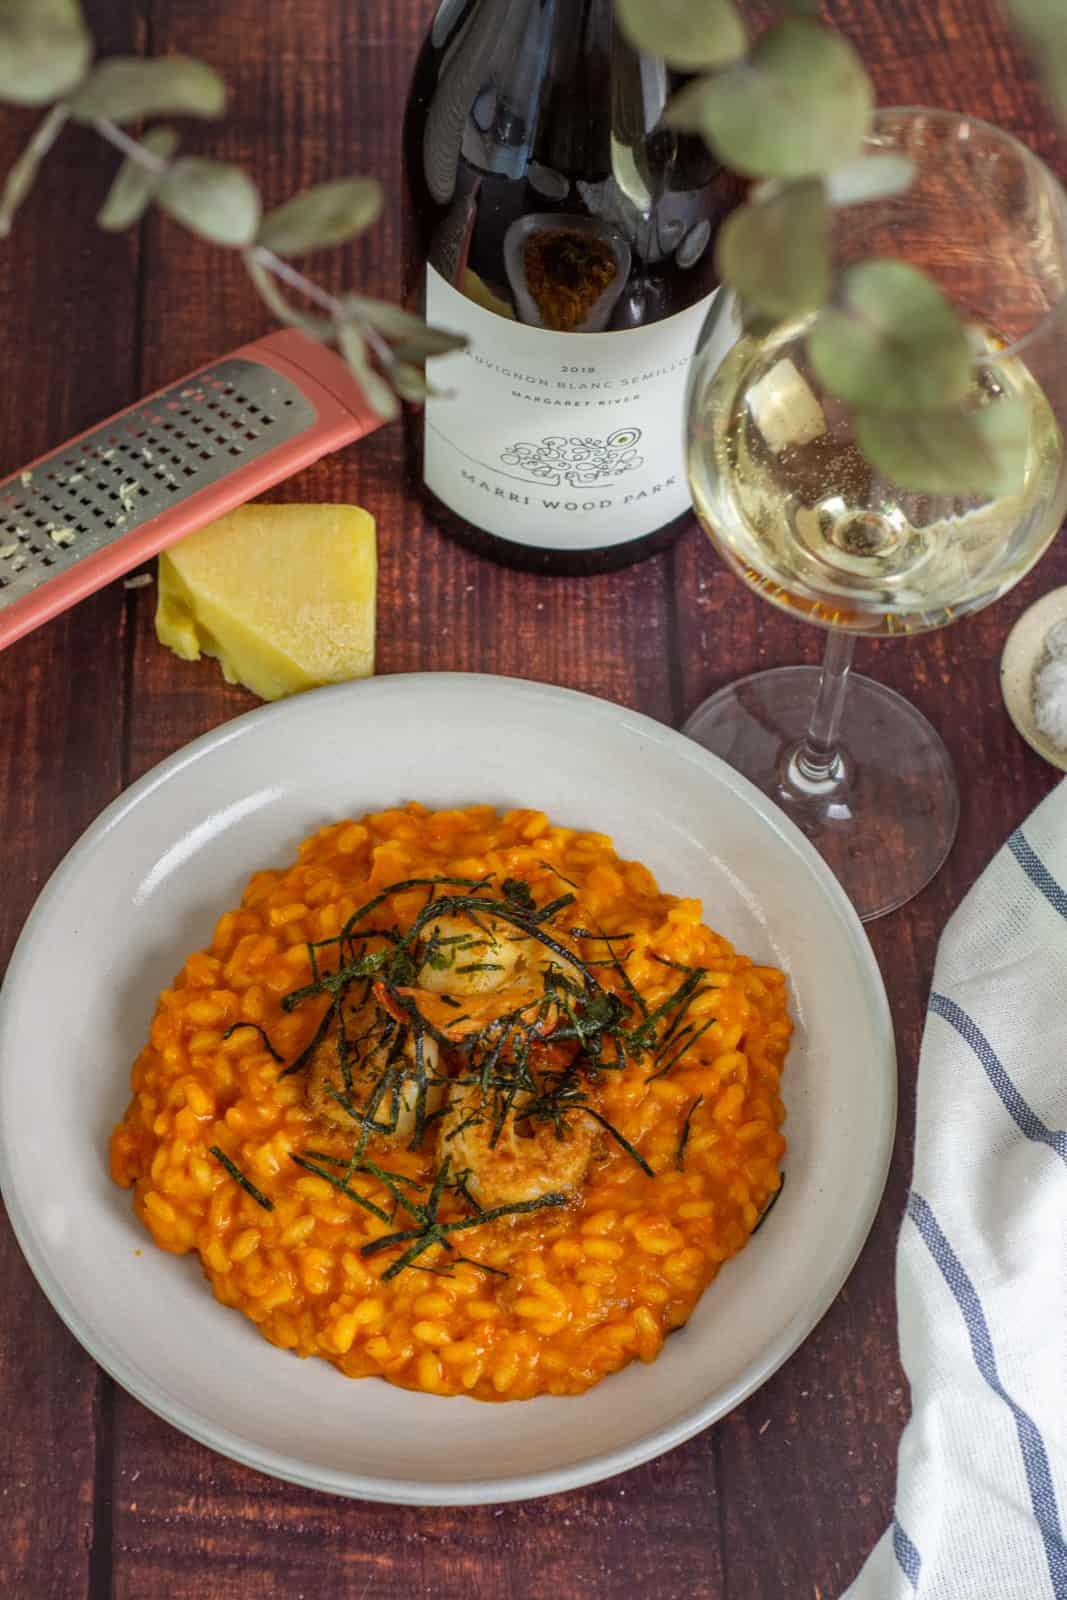 prawn risotto in a white bowl, parmesan cheese and marri wood park white wine